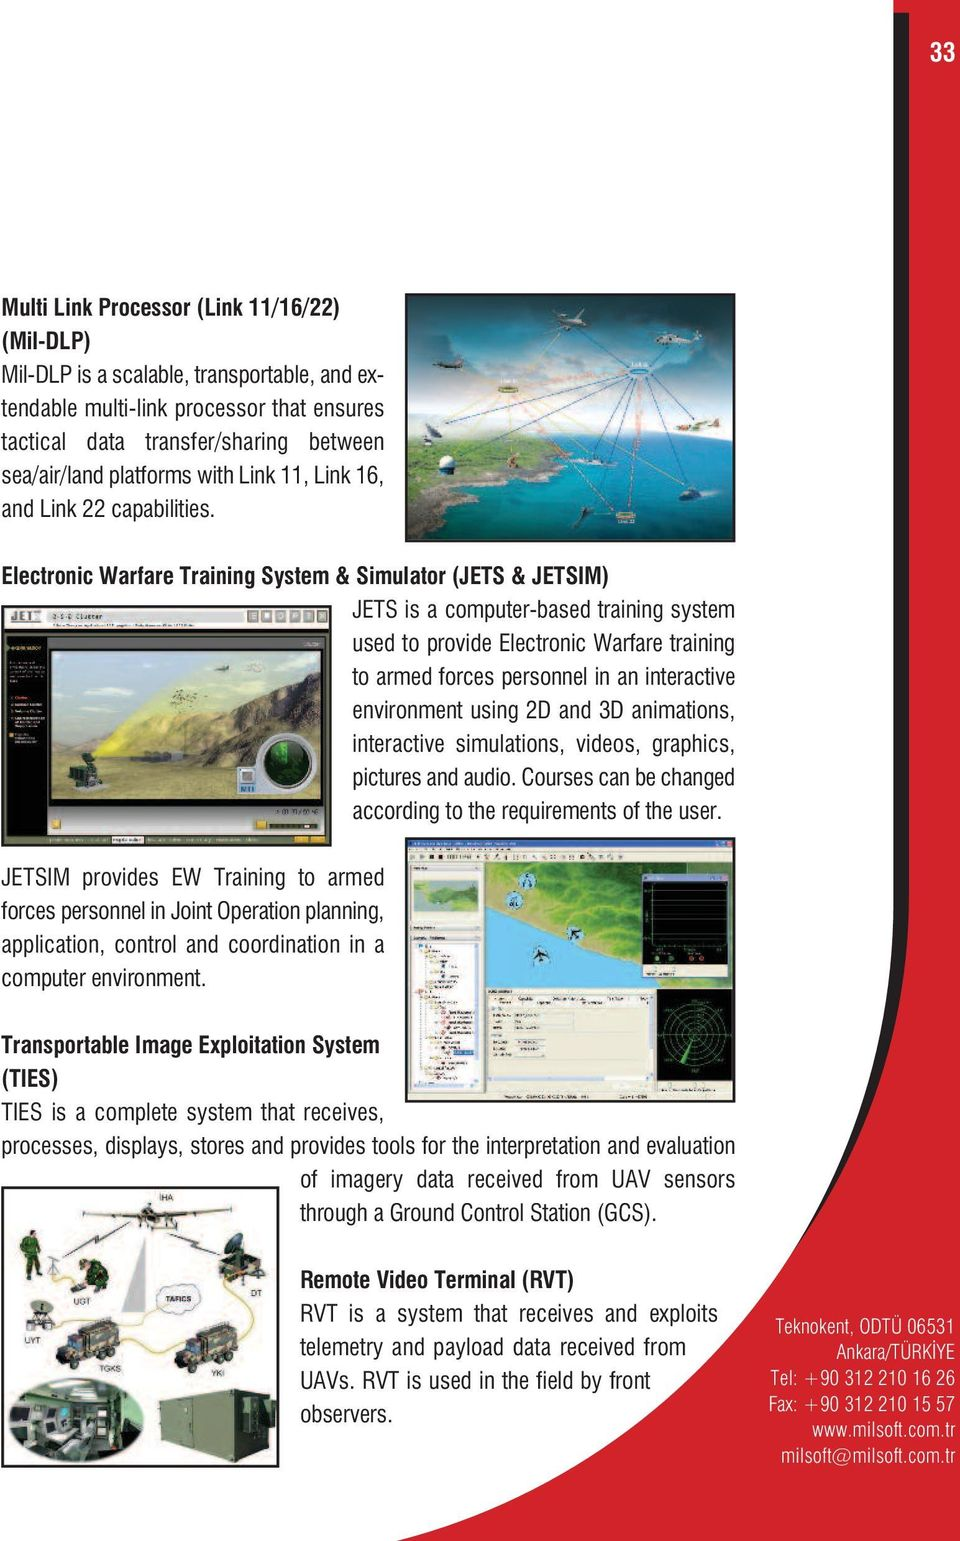 Electronic Warfare Training System & Simulator (JETS & JETSIM) JETS is a computer-based training system used to provide Electronic Warfare training to armed forces personnel in an interactive